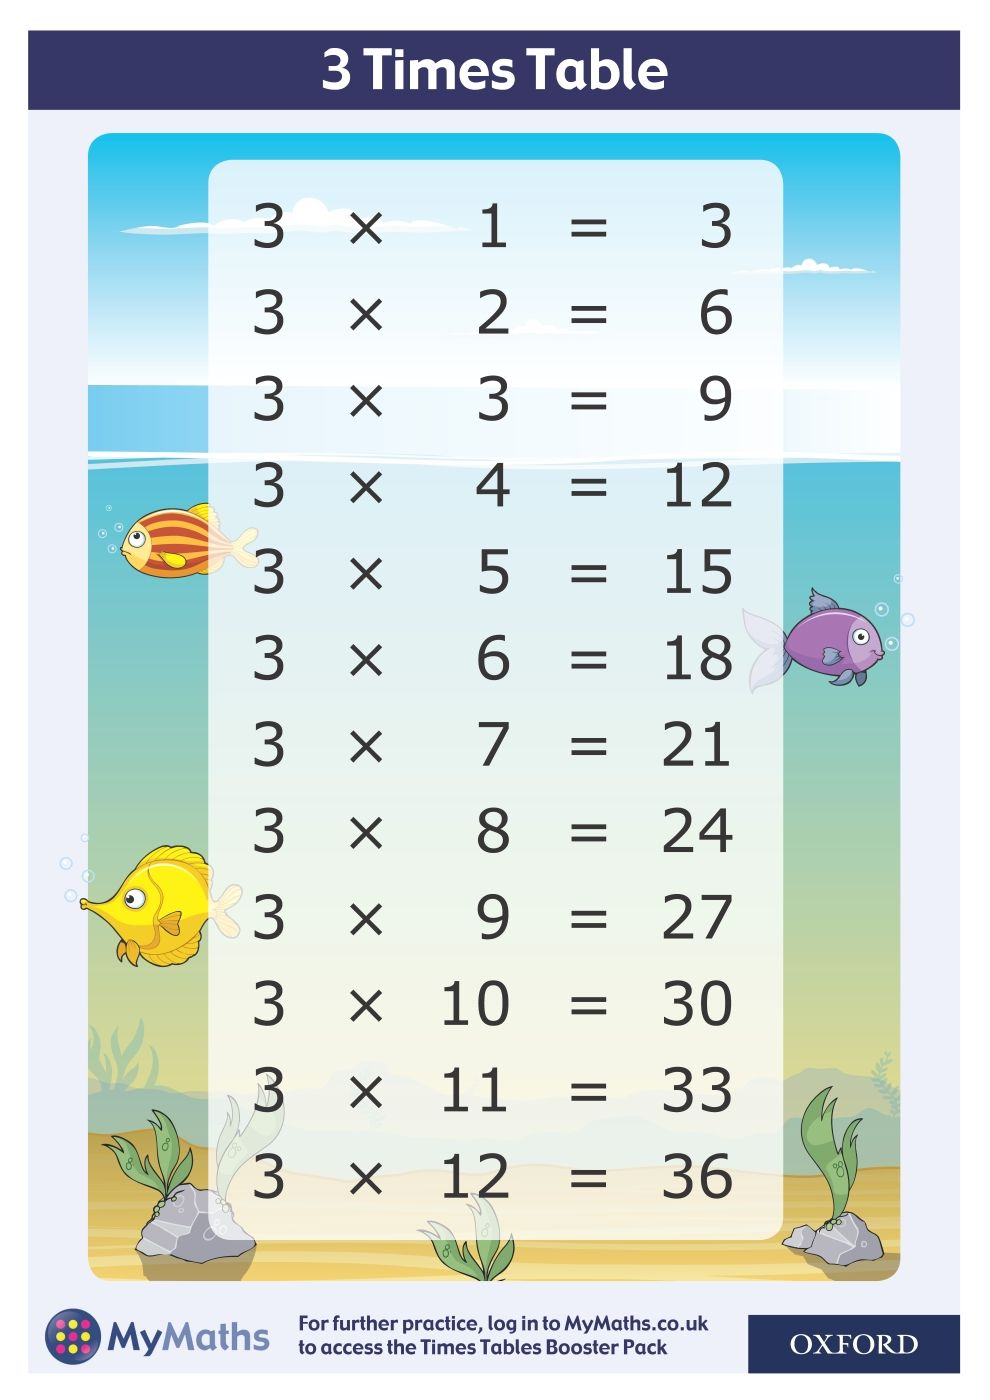 Download A Free Mymaths 3 Times Table Poster A4 To Help Your Class Master Th High School Kids Reading Comprehension Worksheets Education Quotes Inspirational